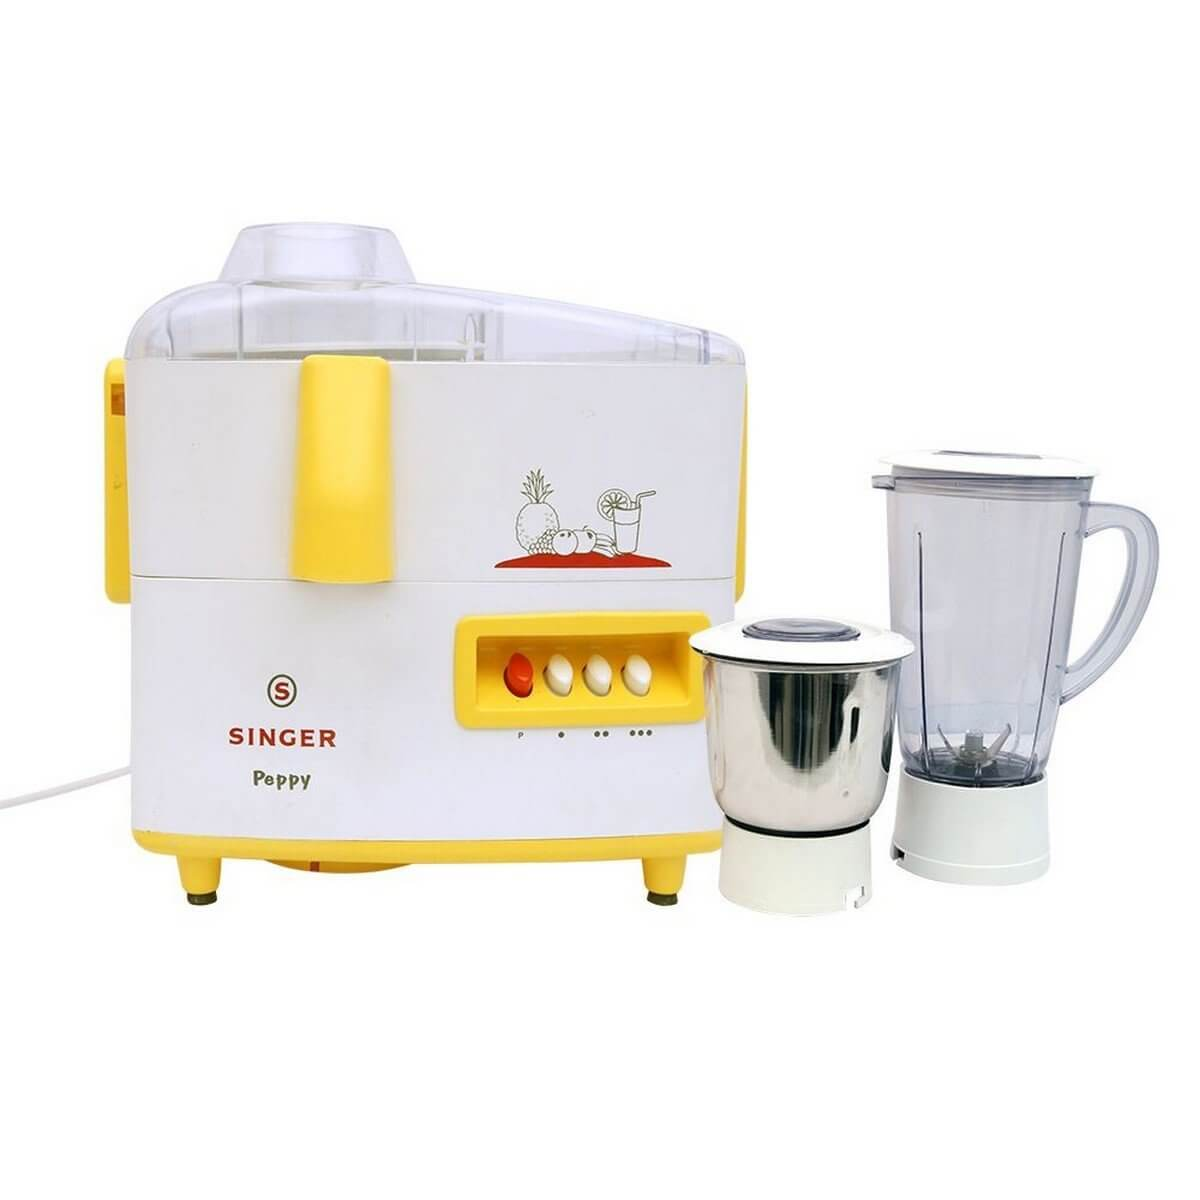 Singer Peppy Juicy 500 Watts juicer